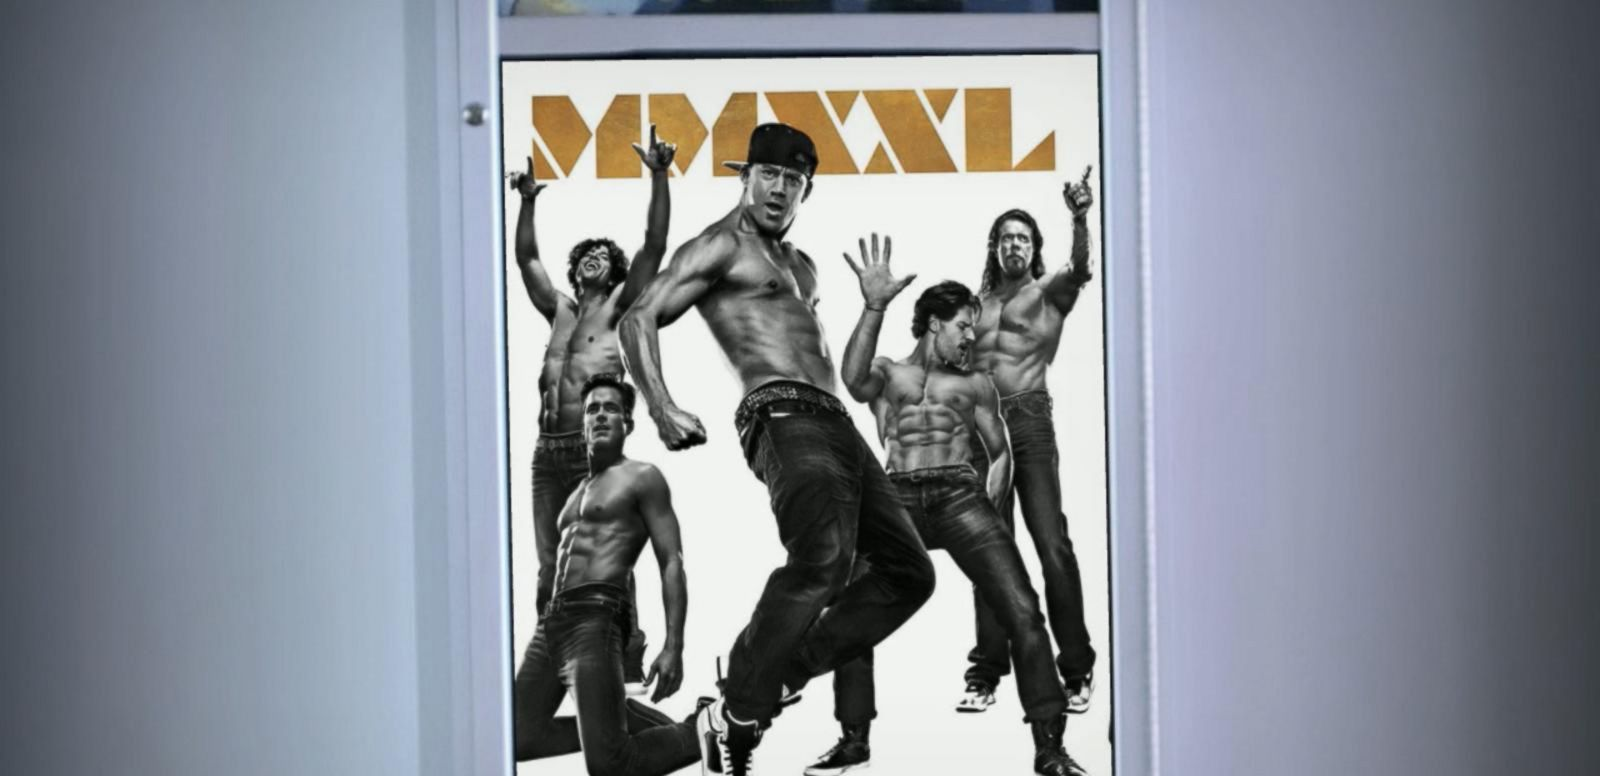 VIDEO: 'Magic Mike XXL' Poster Has Fans Steaming